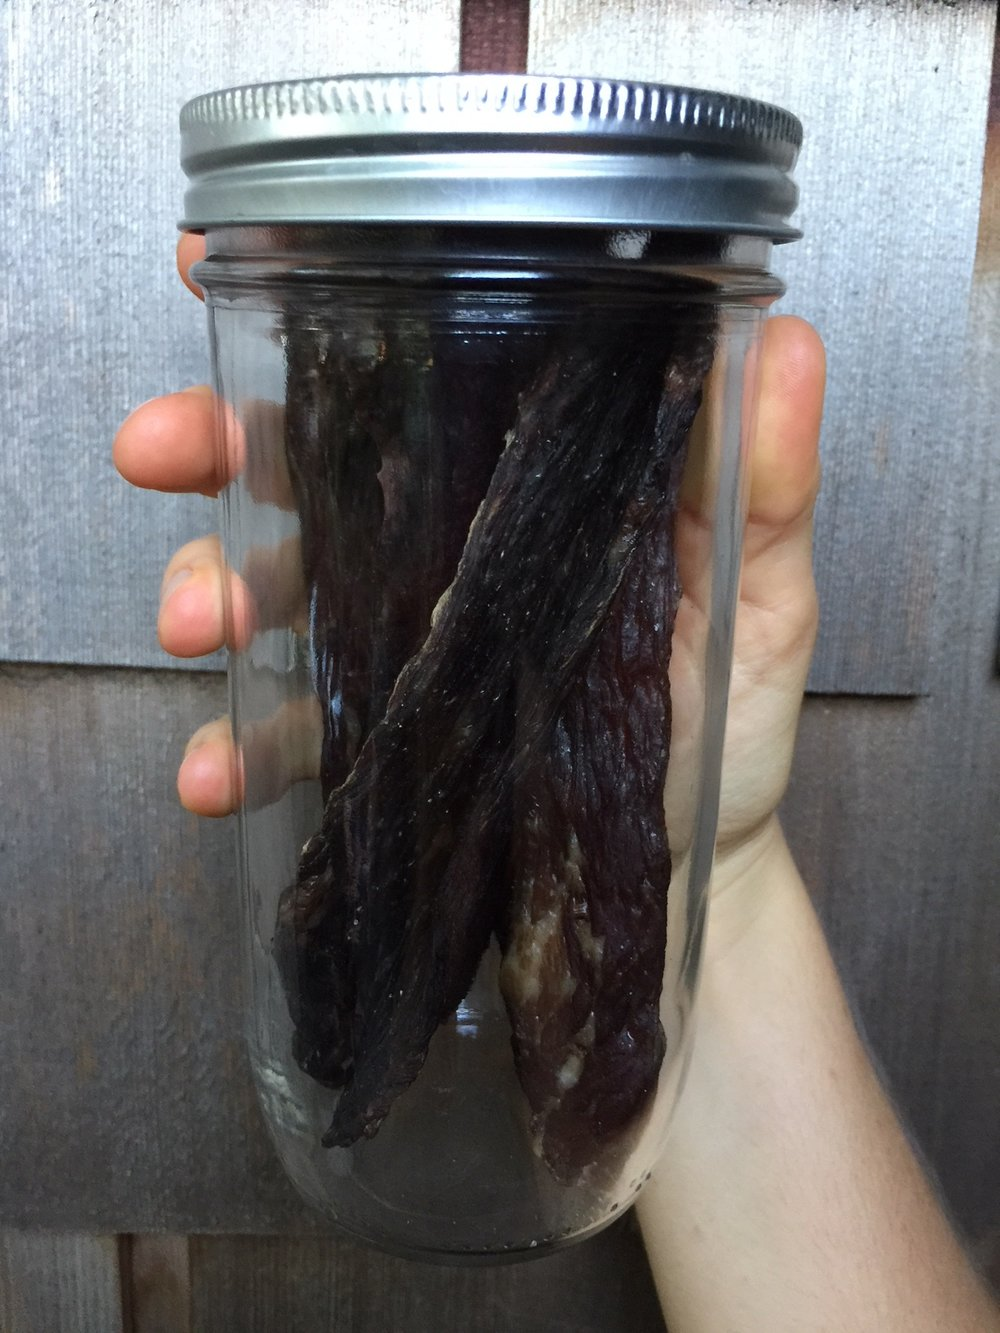 Store your jerky in an airtight jar for up to 6 months (unrefrigerated).